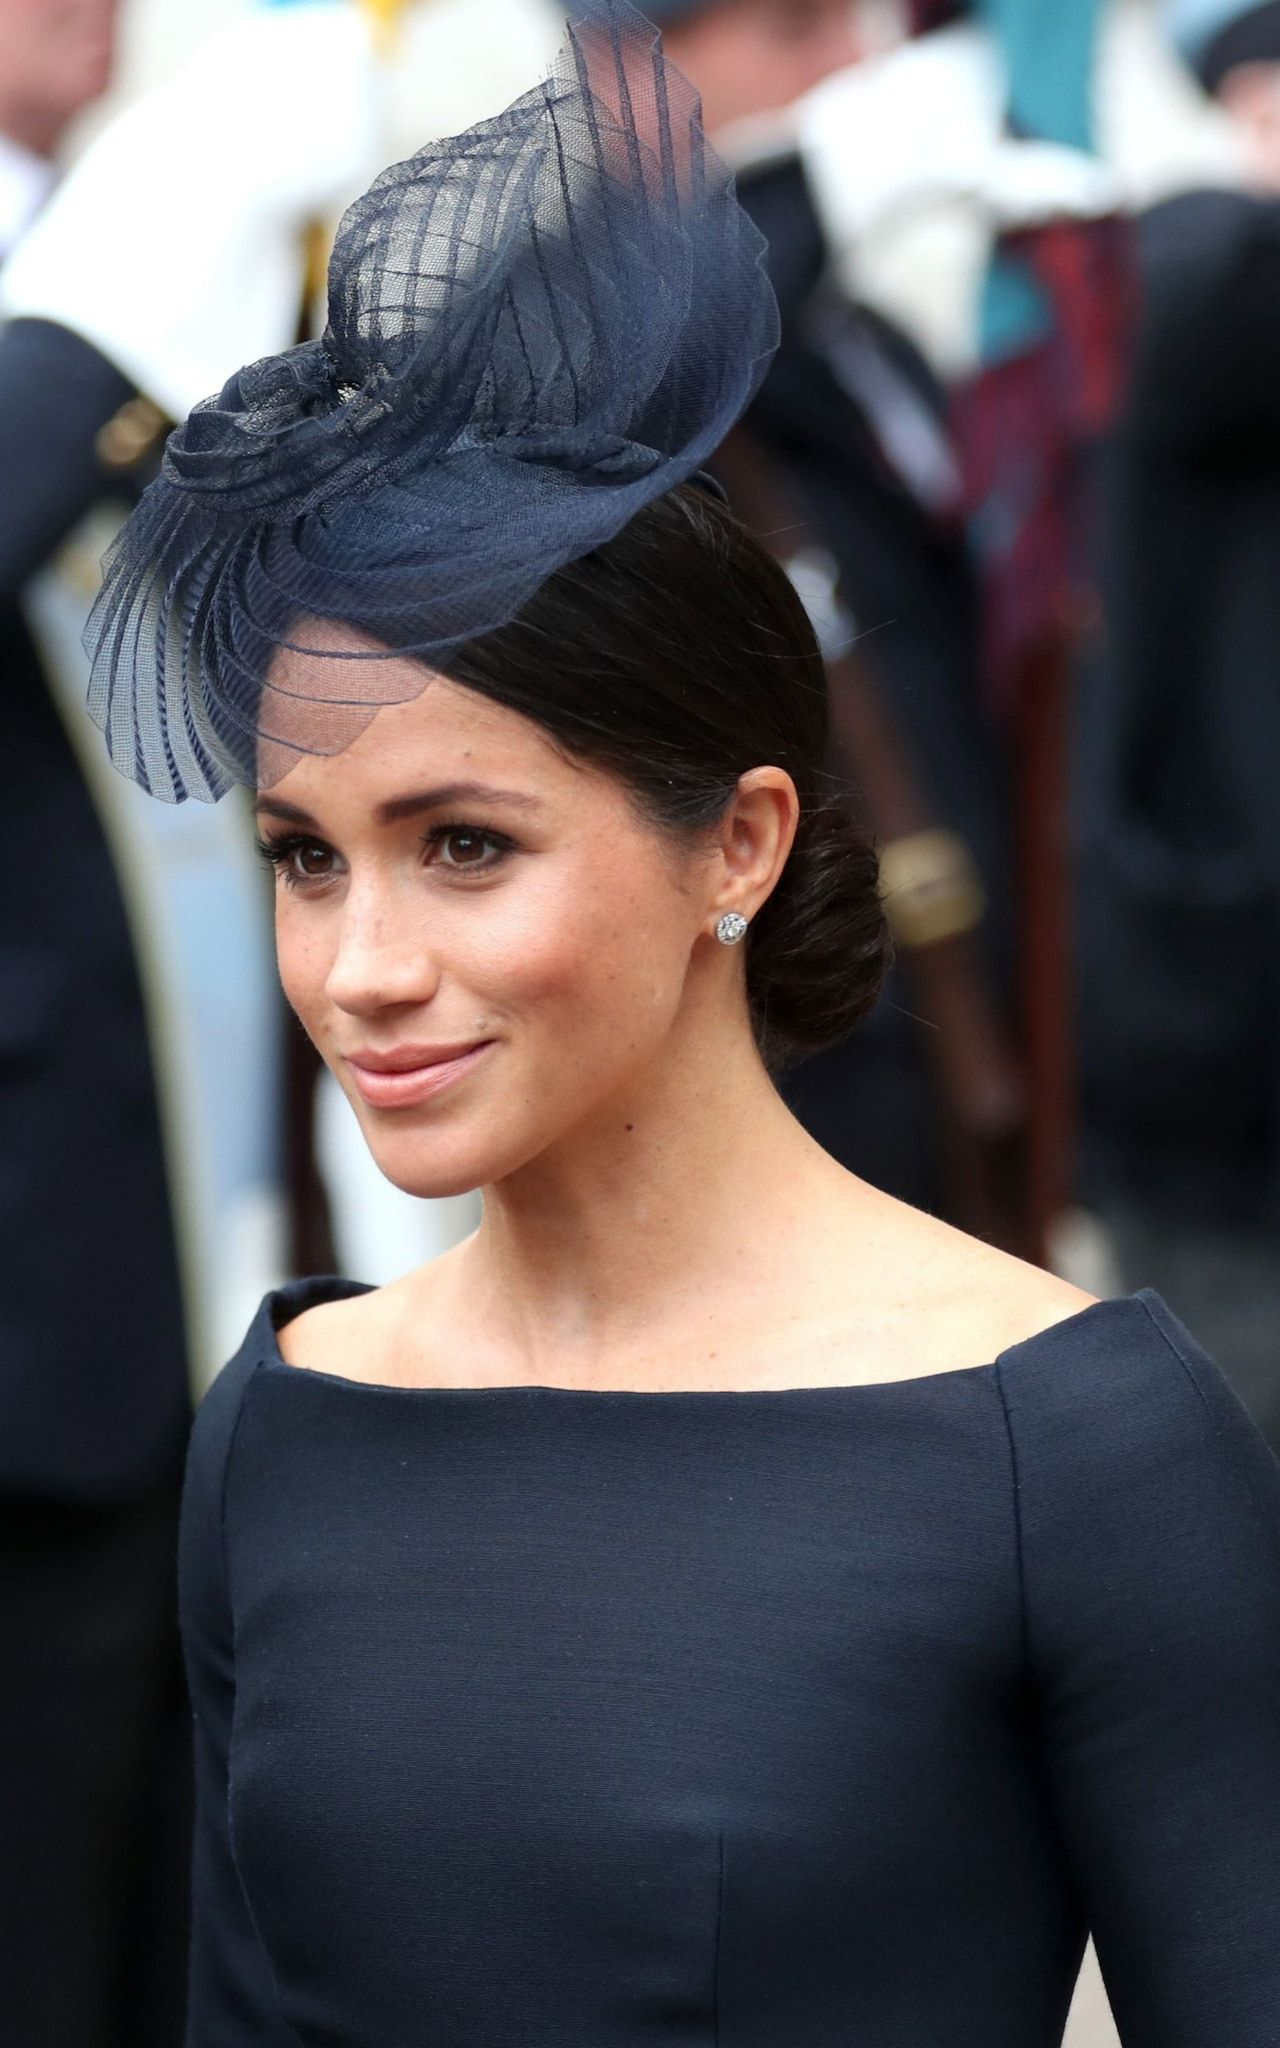 Dior is undeniably chic, but should the Duchess of Sussex